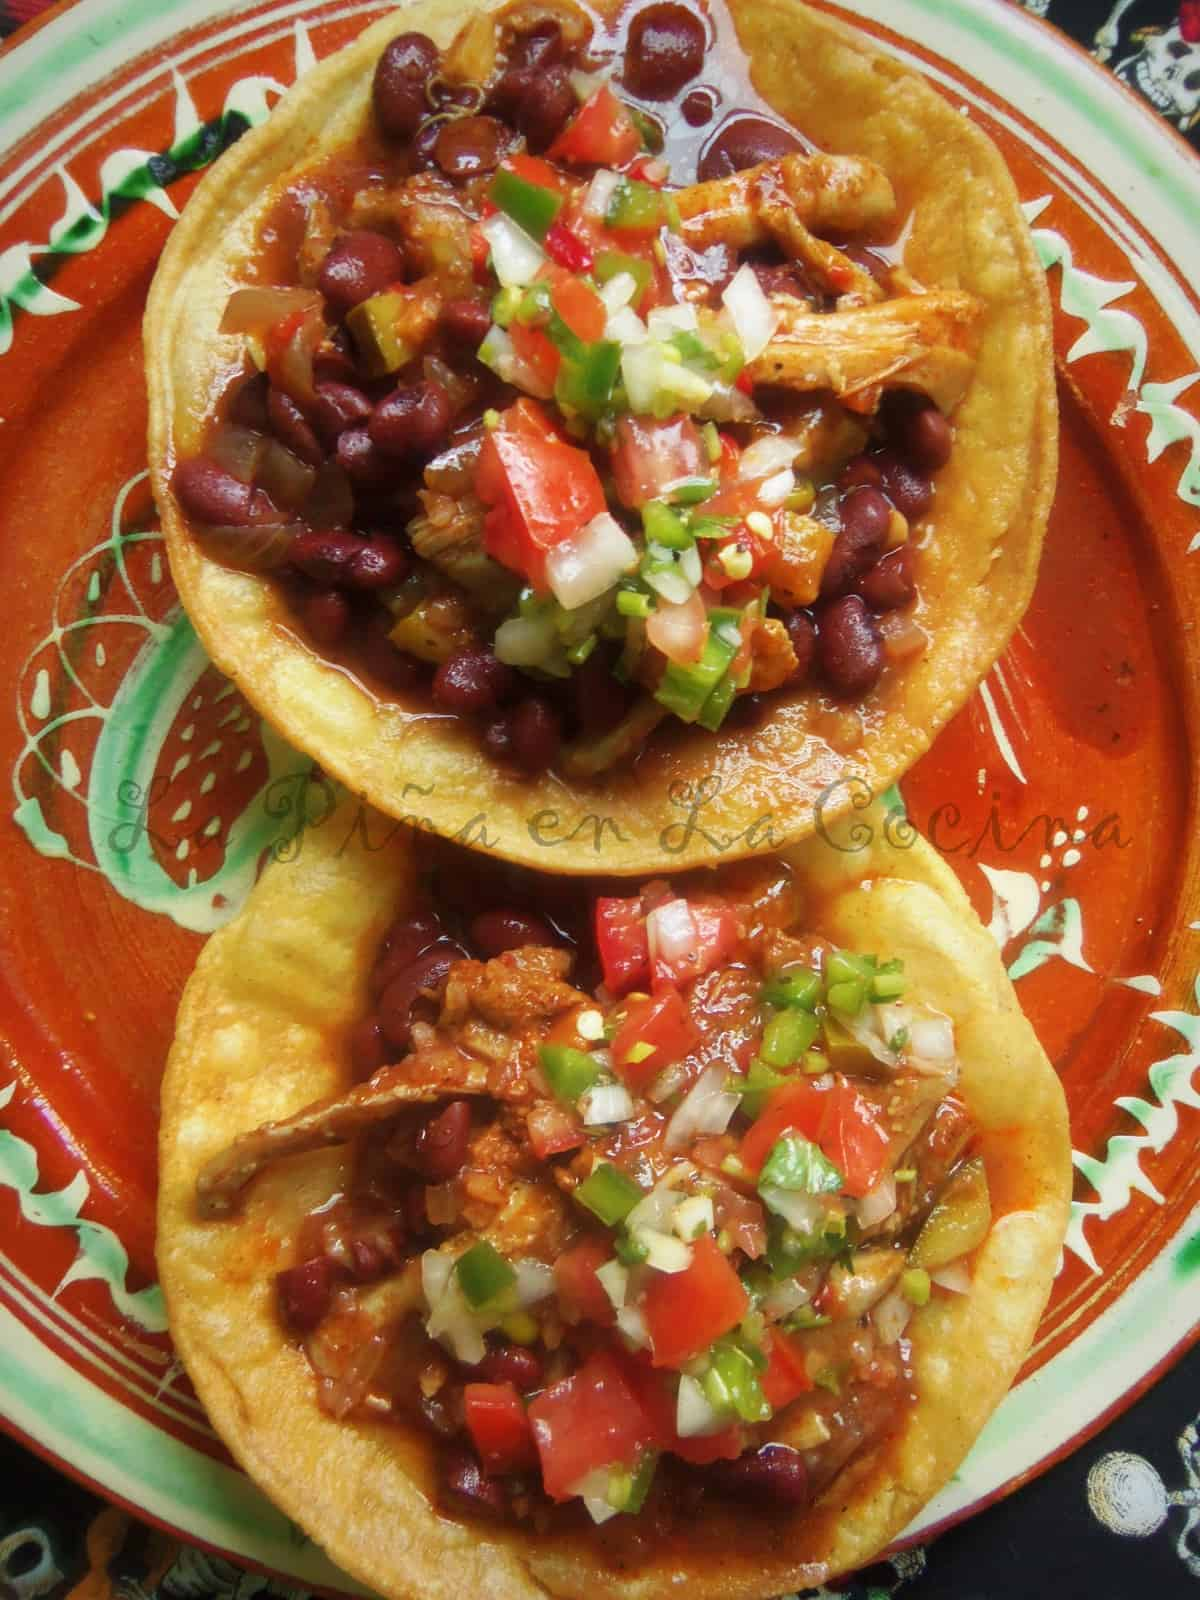 Tinga de Pollo served on tostadas with red beans and pico de gallo